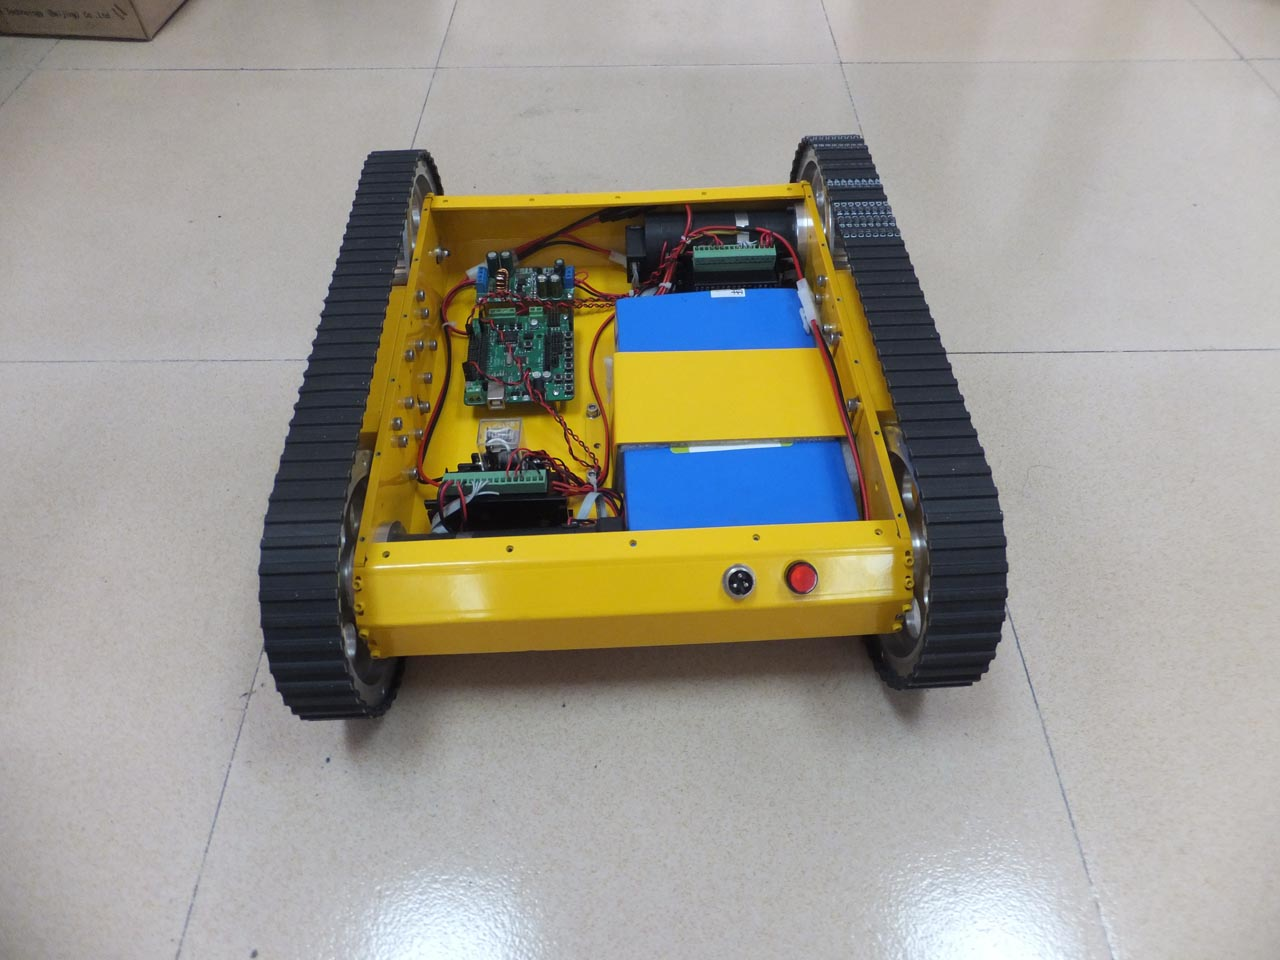 Heavy-duty-tracked-mobile-robot-tank-kit-4